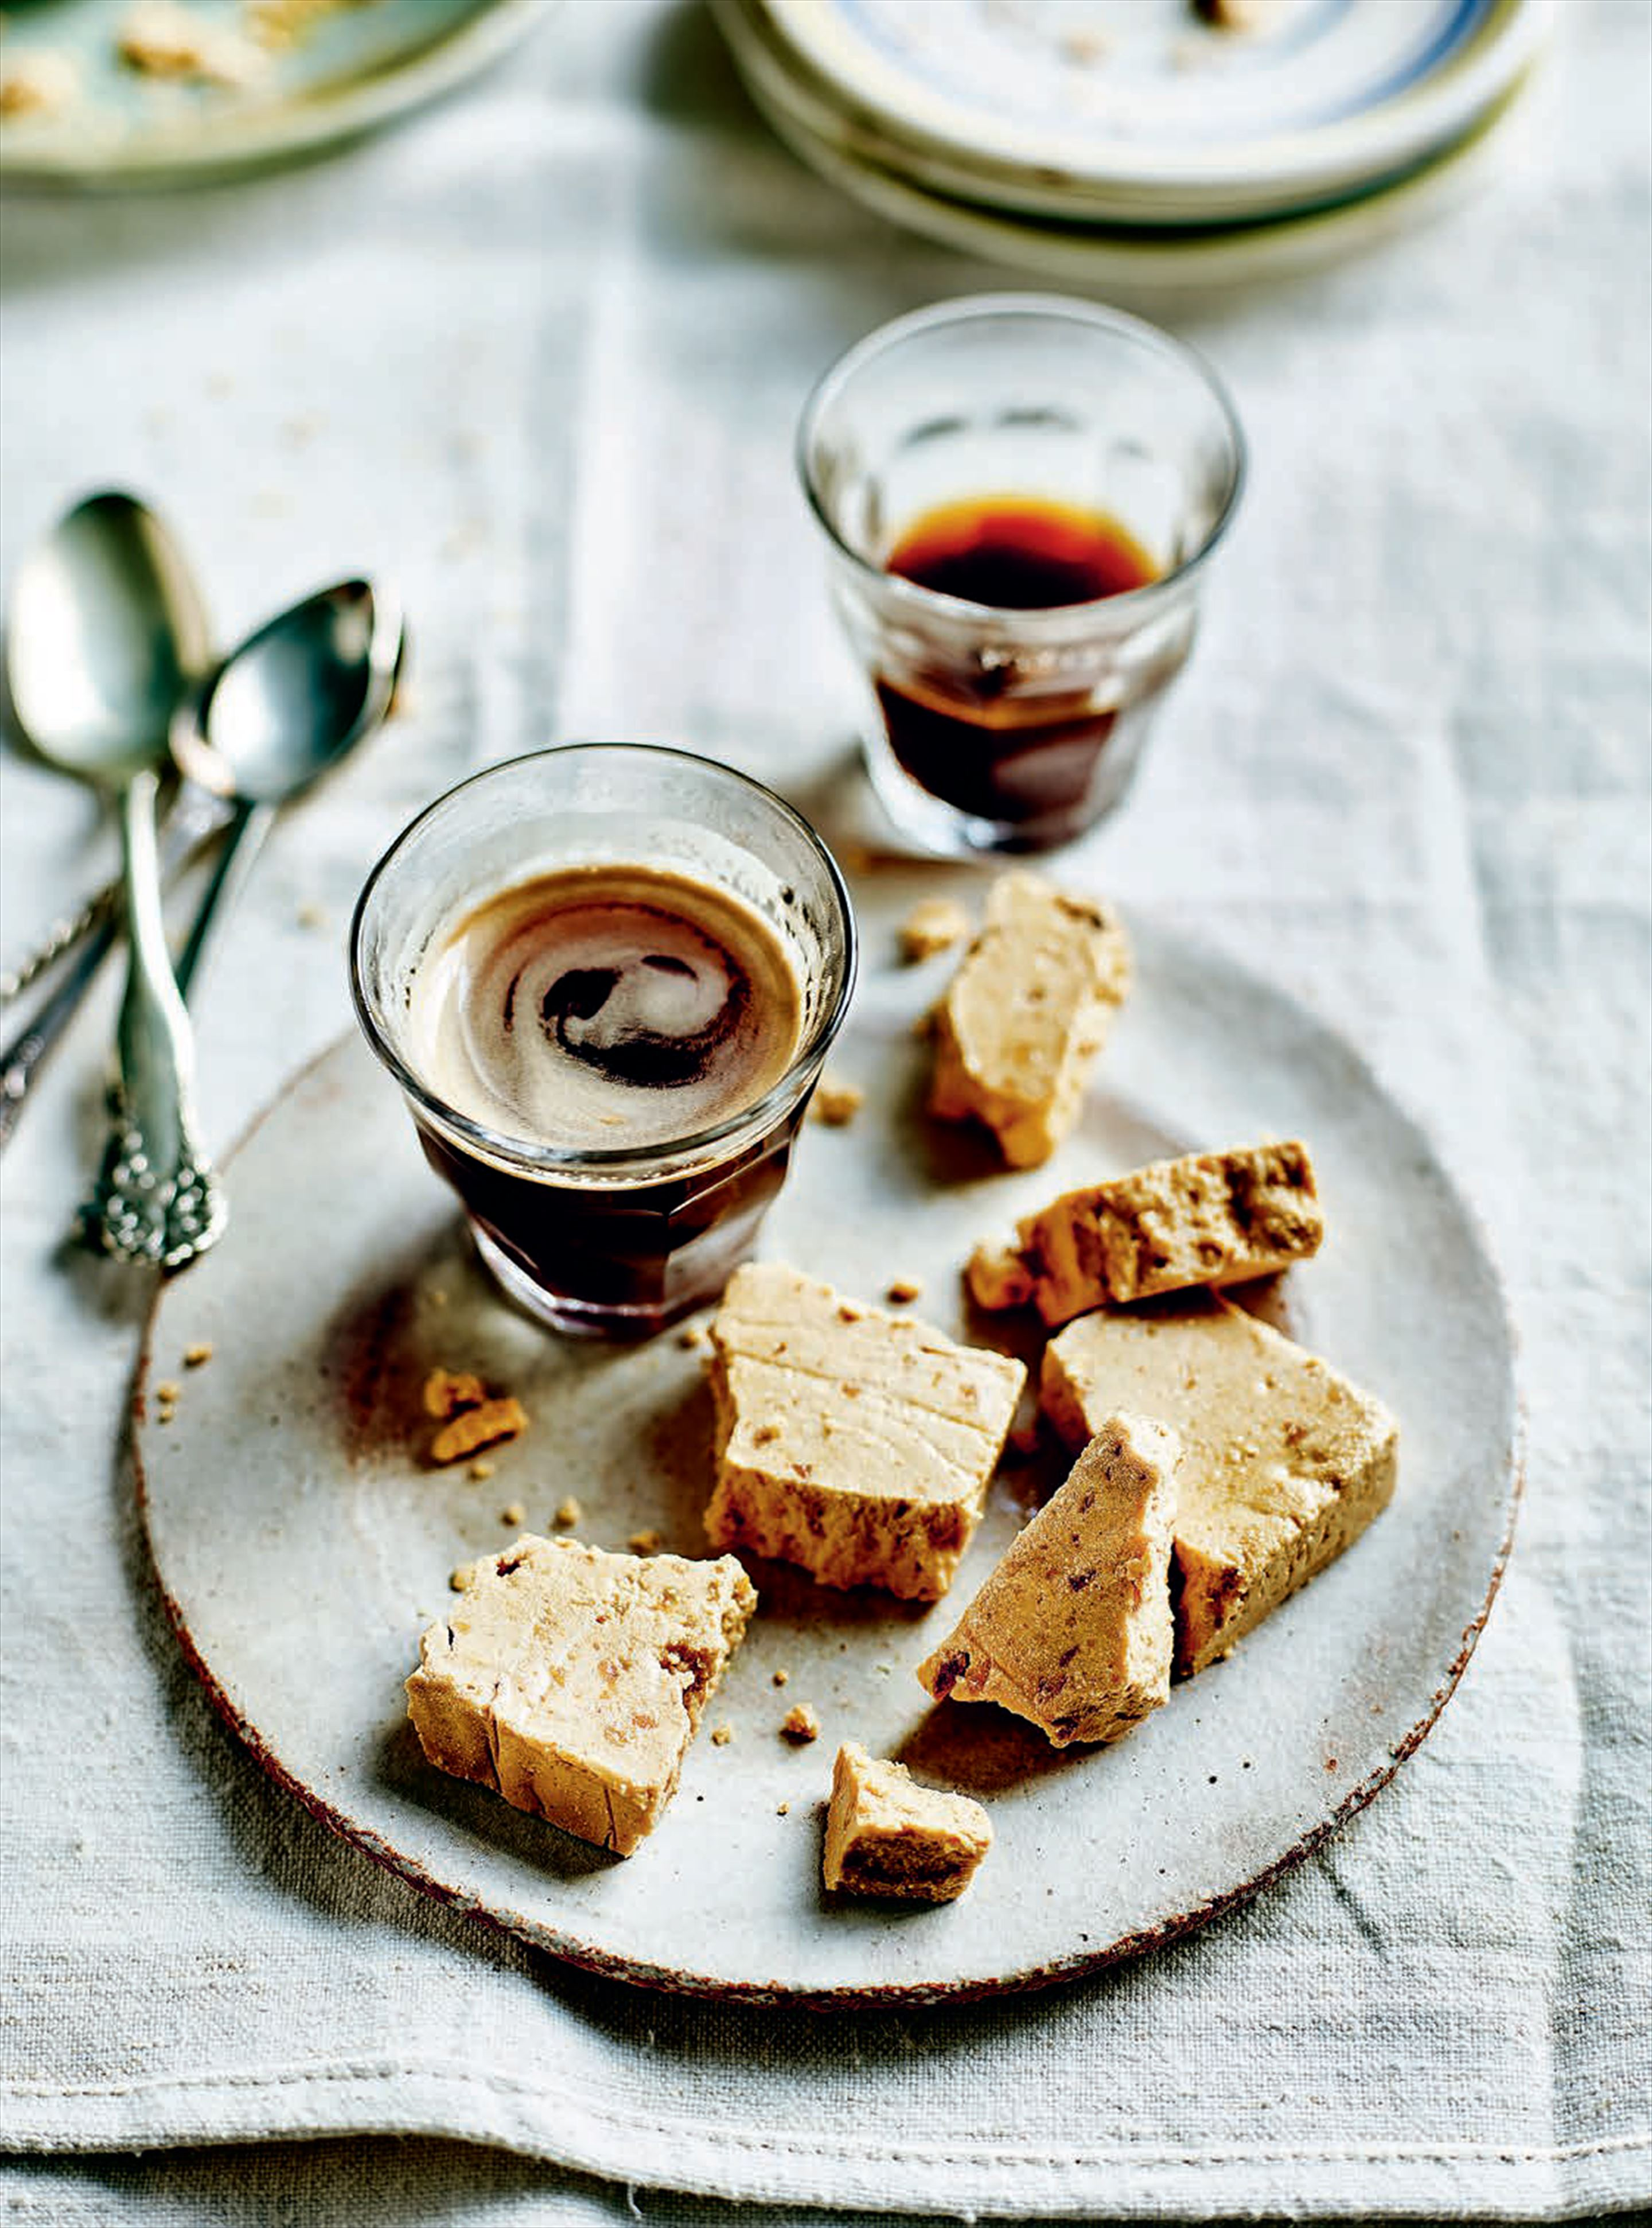 Roasted almond nougat